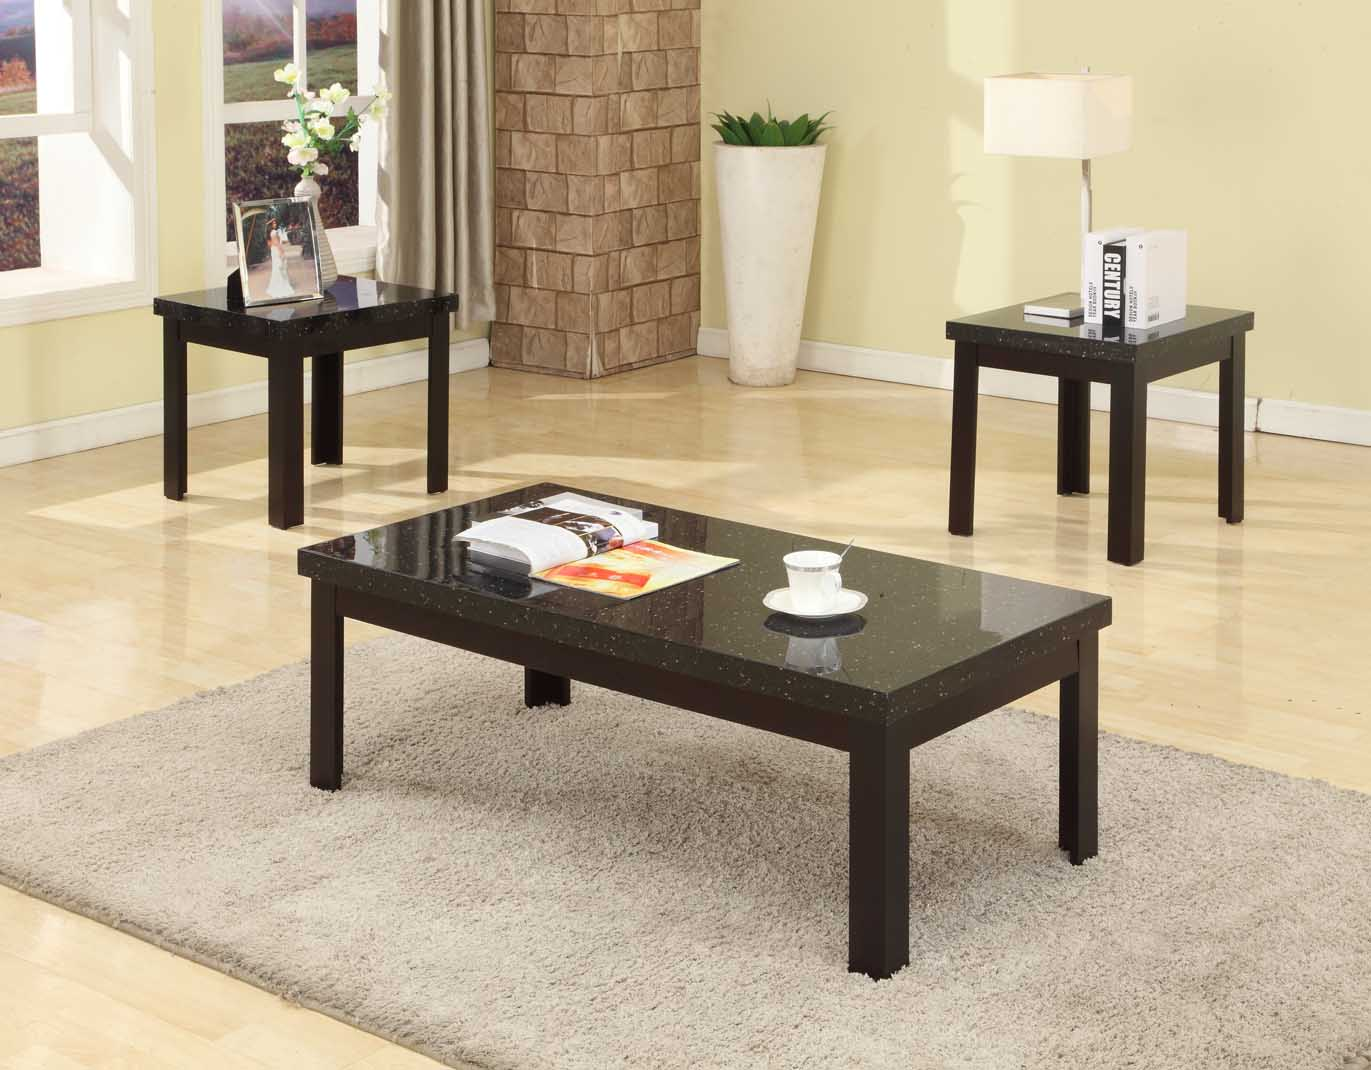 coffee-and-end-table-set-black-faux-marble-top-contemporary-wooden-furniture-examples-home-interior-guide (Image 3 of 10)